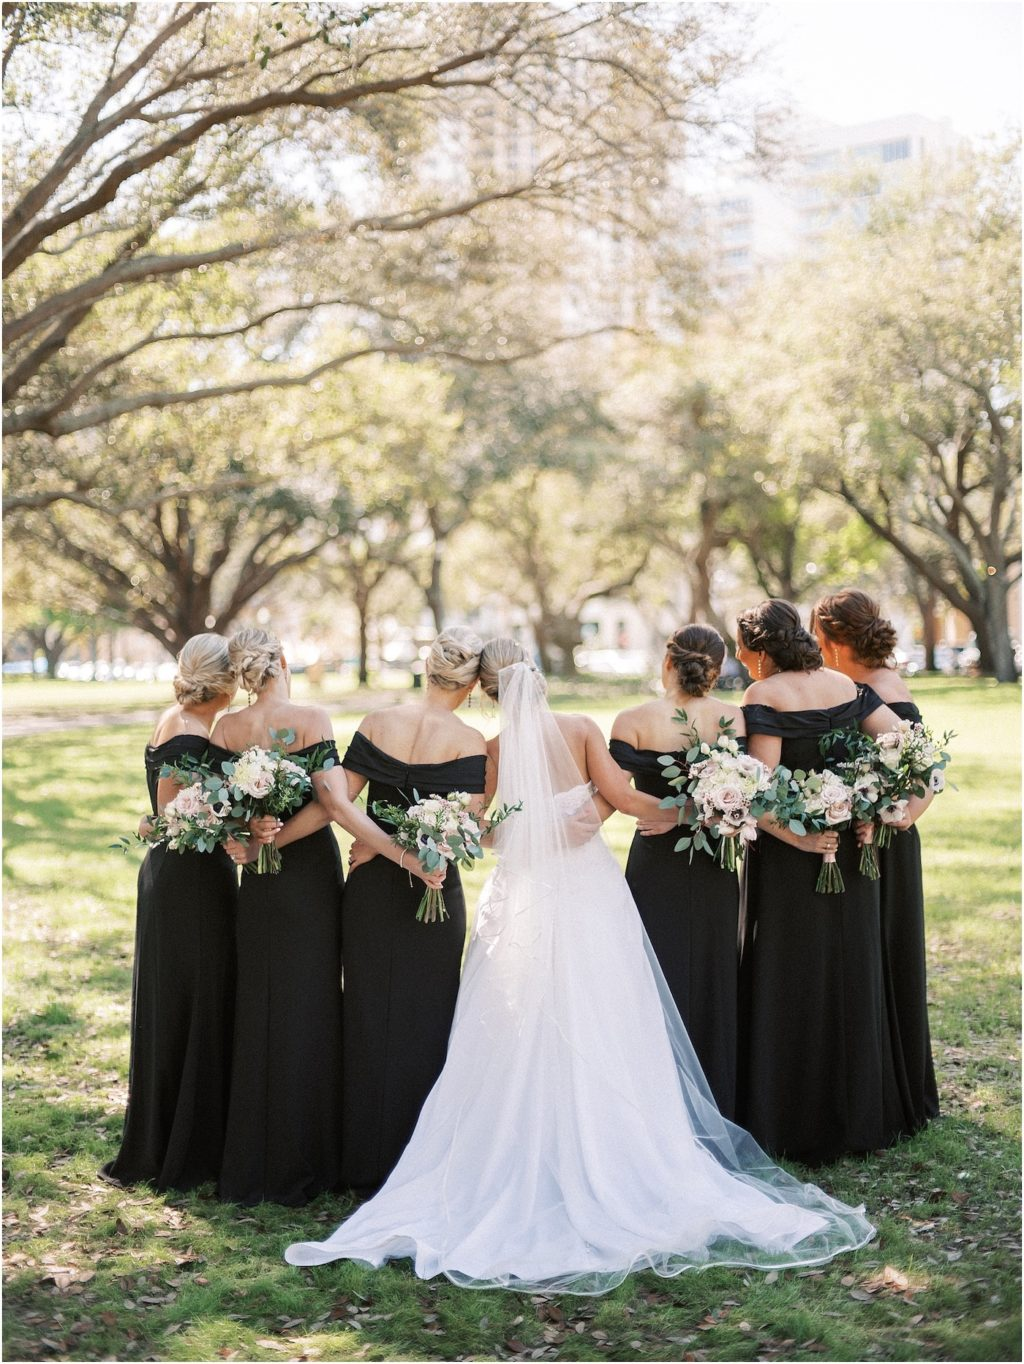 Bride and Bridesmaids Outdoor Portraits | Black Long Bridesmaid Dresses with Black and White Anemone and Greenery Bouquets | Tampa Bridesmaids Dress Store Bella Bridesmaids